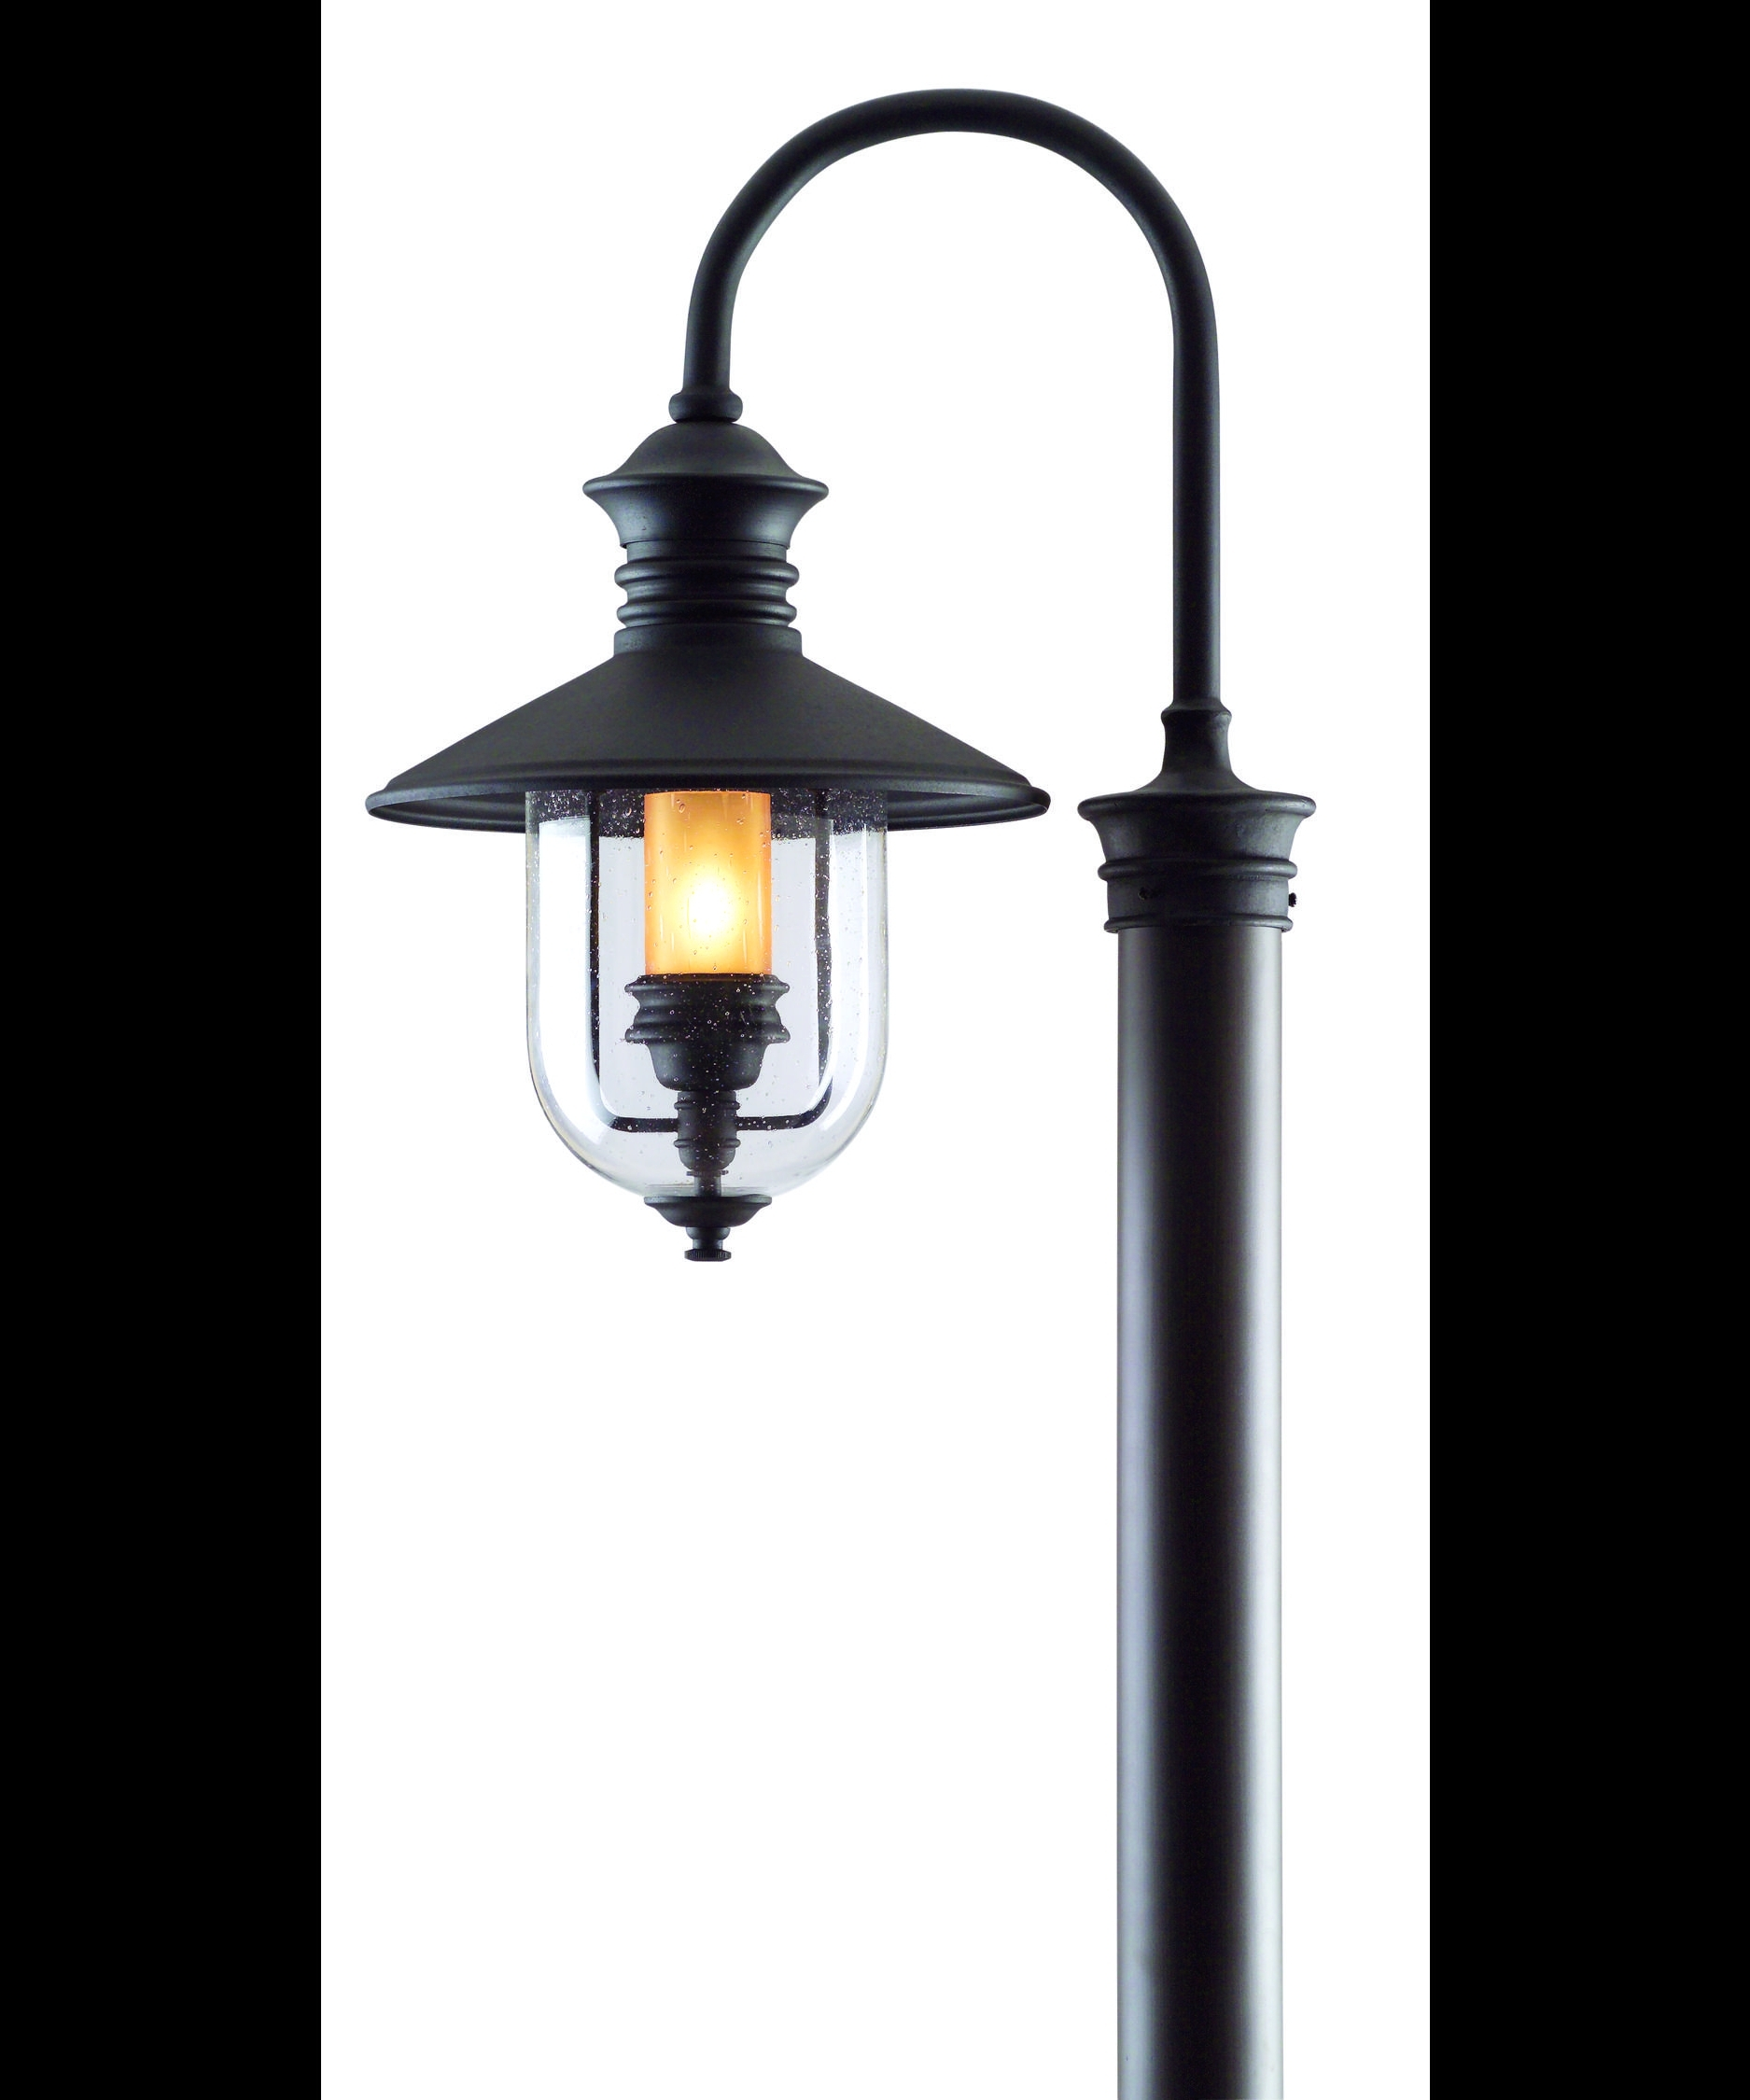 Outdoor Light Fixture Covers – Outdoor Lighting Ideas For Best And Newest Outdoor Pole Lanterns (View 10 of 20)